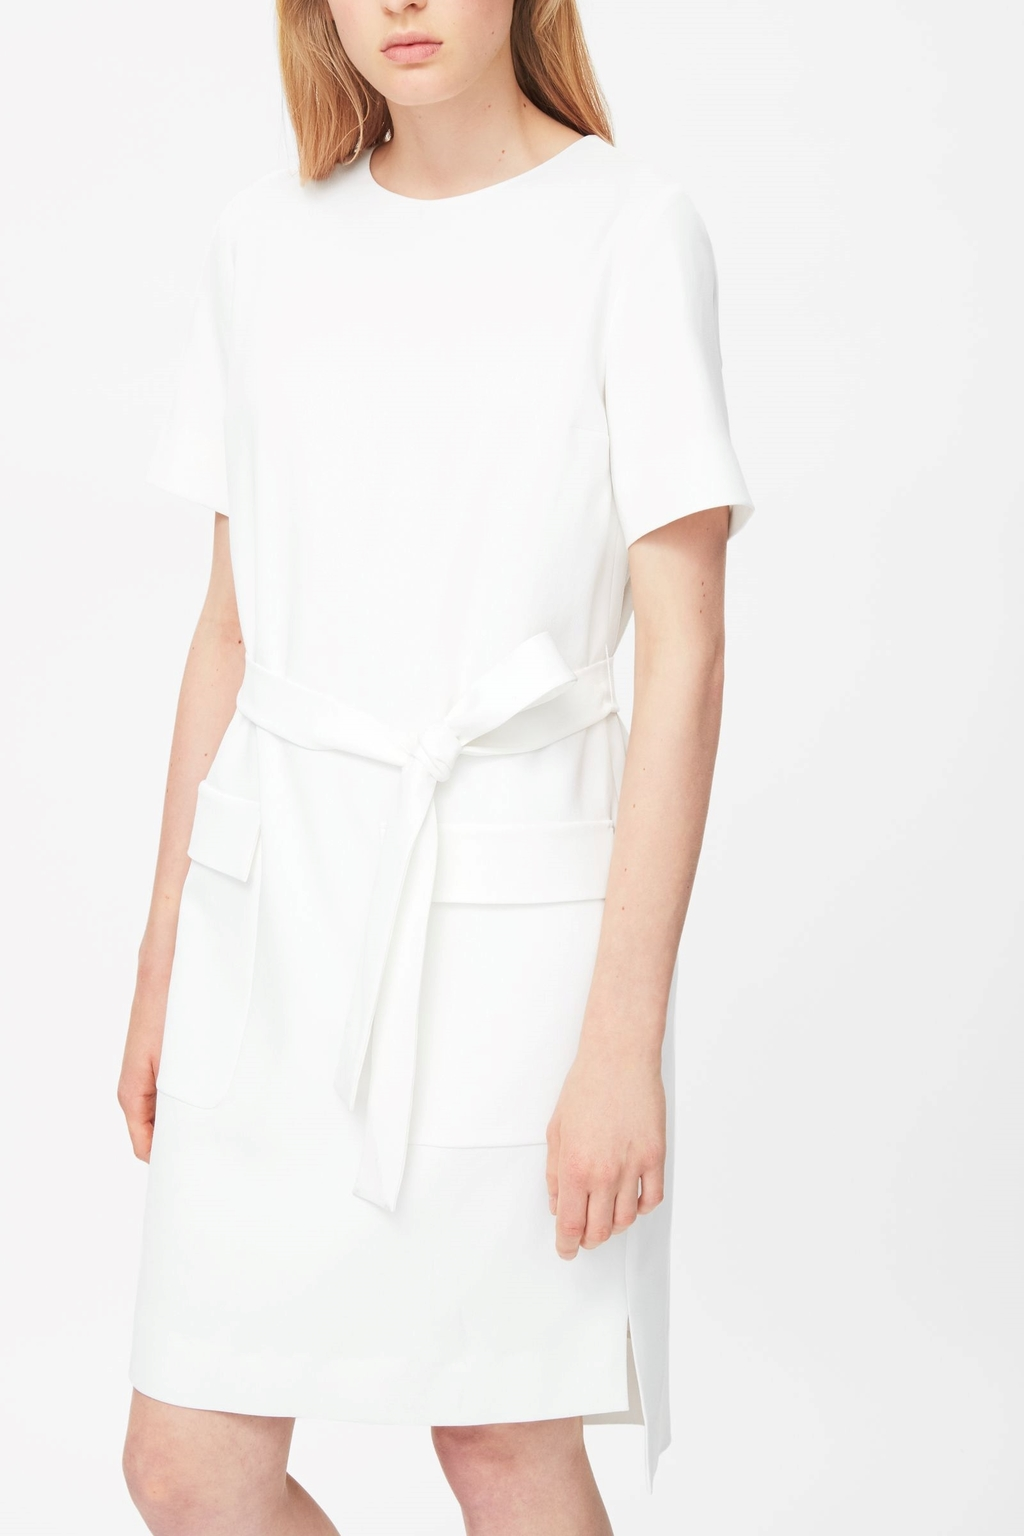 Belted Dress - style: shift; pattern: plain; predominant colour: ivory/cream; occasions: casual, evening, creative work; length: just above the knee; fit: straight cut; fibres: viscose/rayon - 100%; neckline: crew; hip detail: subtle/flattering hip detail; sleeve length: short sleeve; sleeve style: standard; pattern type: fabric; texture group: woven light midweight; season: s/s 2015; wardrobe: basic